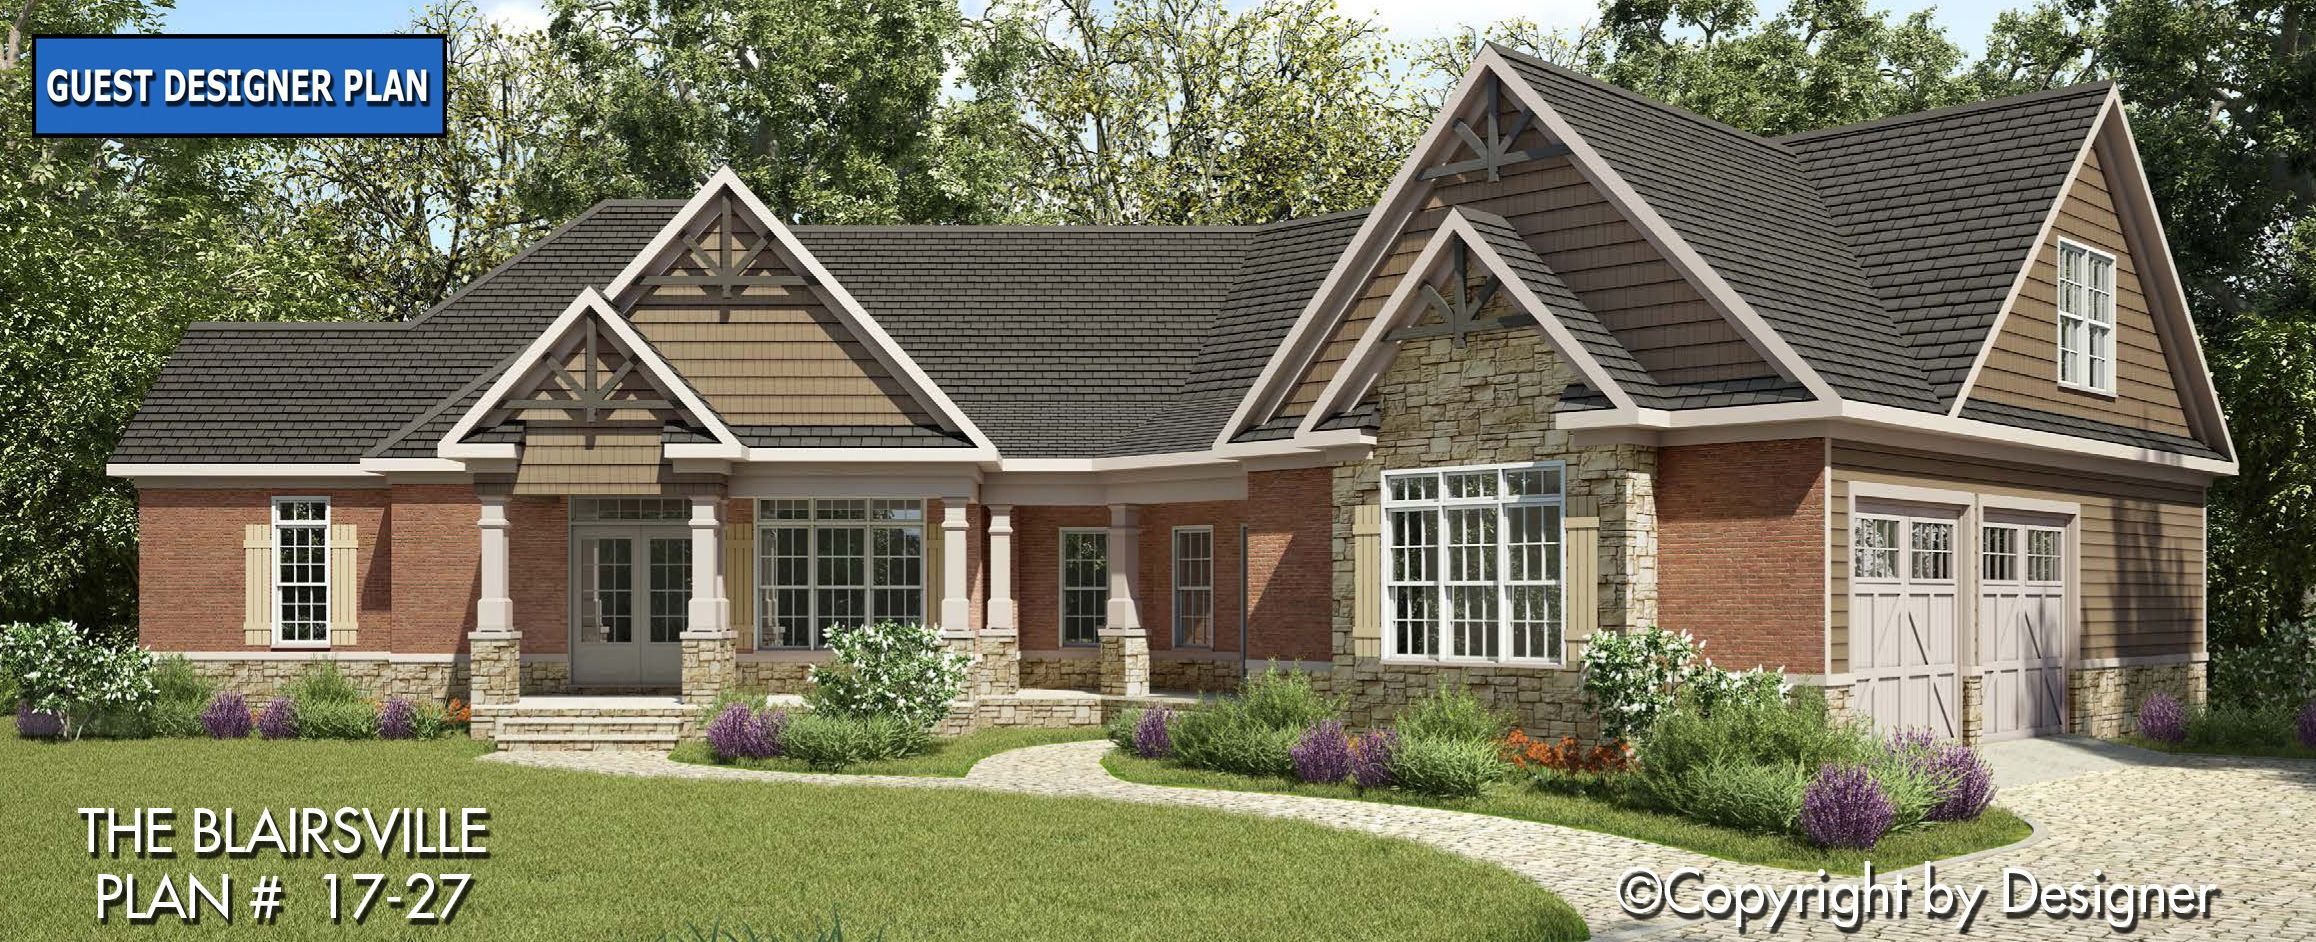 Blairsville House Plan 17 27 Kt Garrell Associates Inc Ranch House Plans Dream House Plans Craftsman House Plans